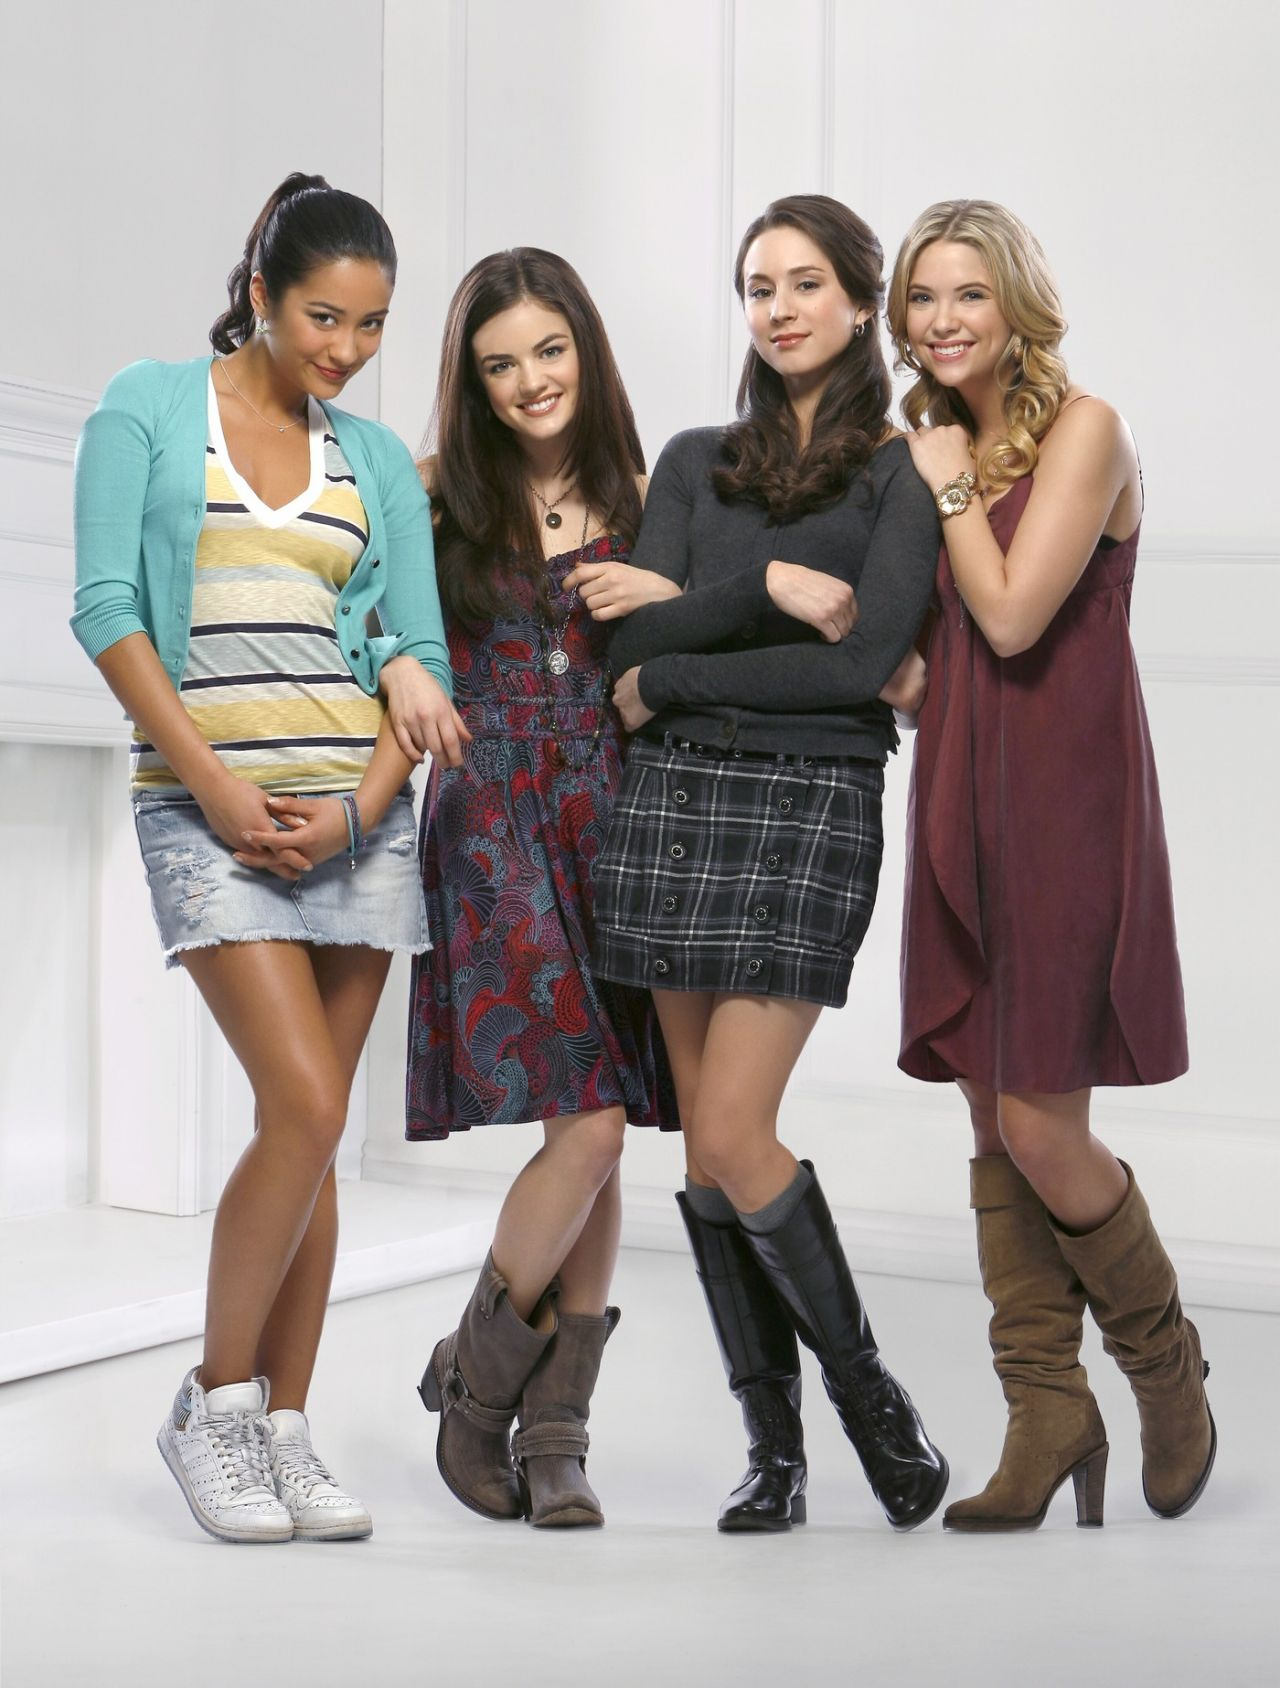 Lucy Hale, Ashley Benson, Shay Mitchell and Troian Bellisario – 'Pretty Little Liars' TV Series Promos Season 1 (Part 2)